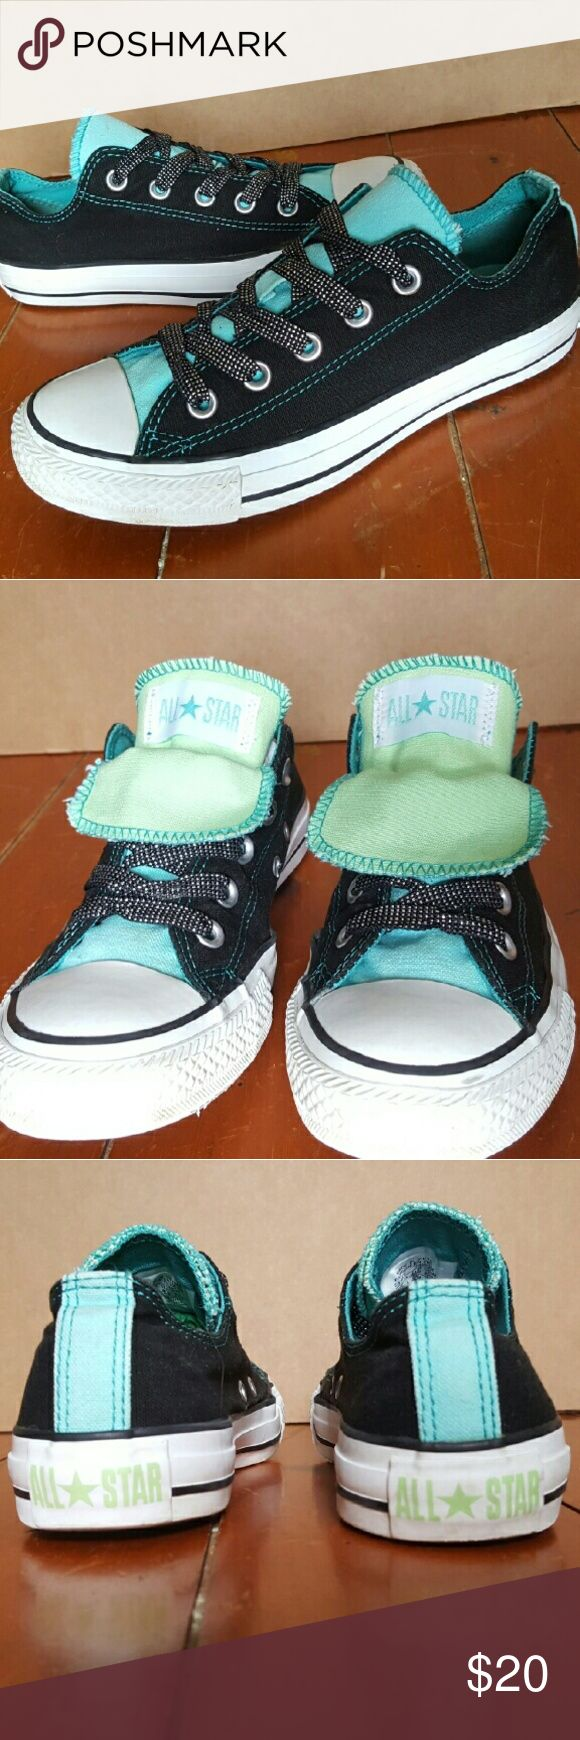 Converse Tiffany blue/Green Double Tounge Shoes Converse Chuck Taylor All Star Low Double Tounge Shoes Women's Size 6 Converse Shoes Sneakers